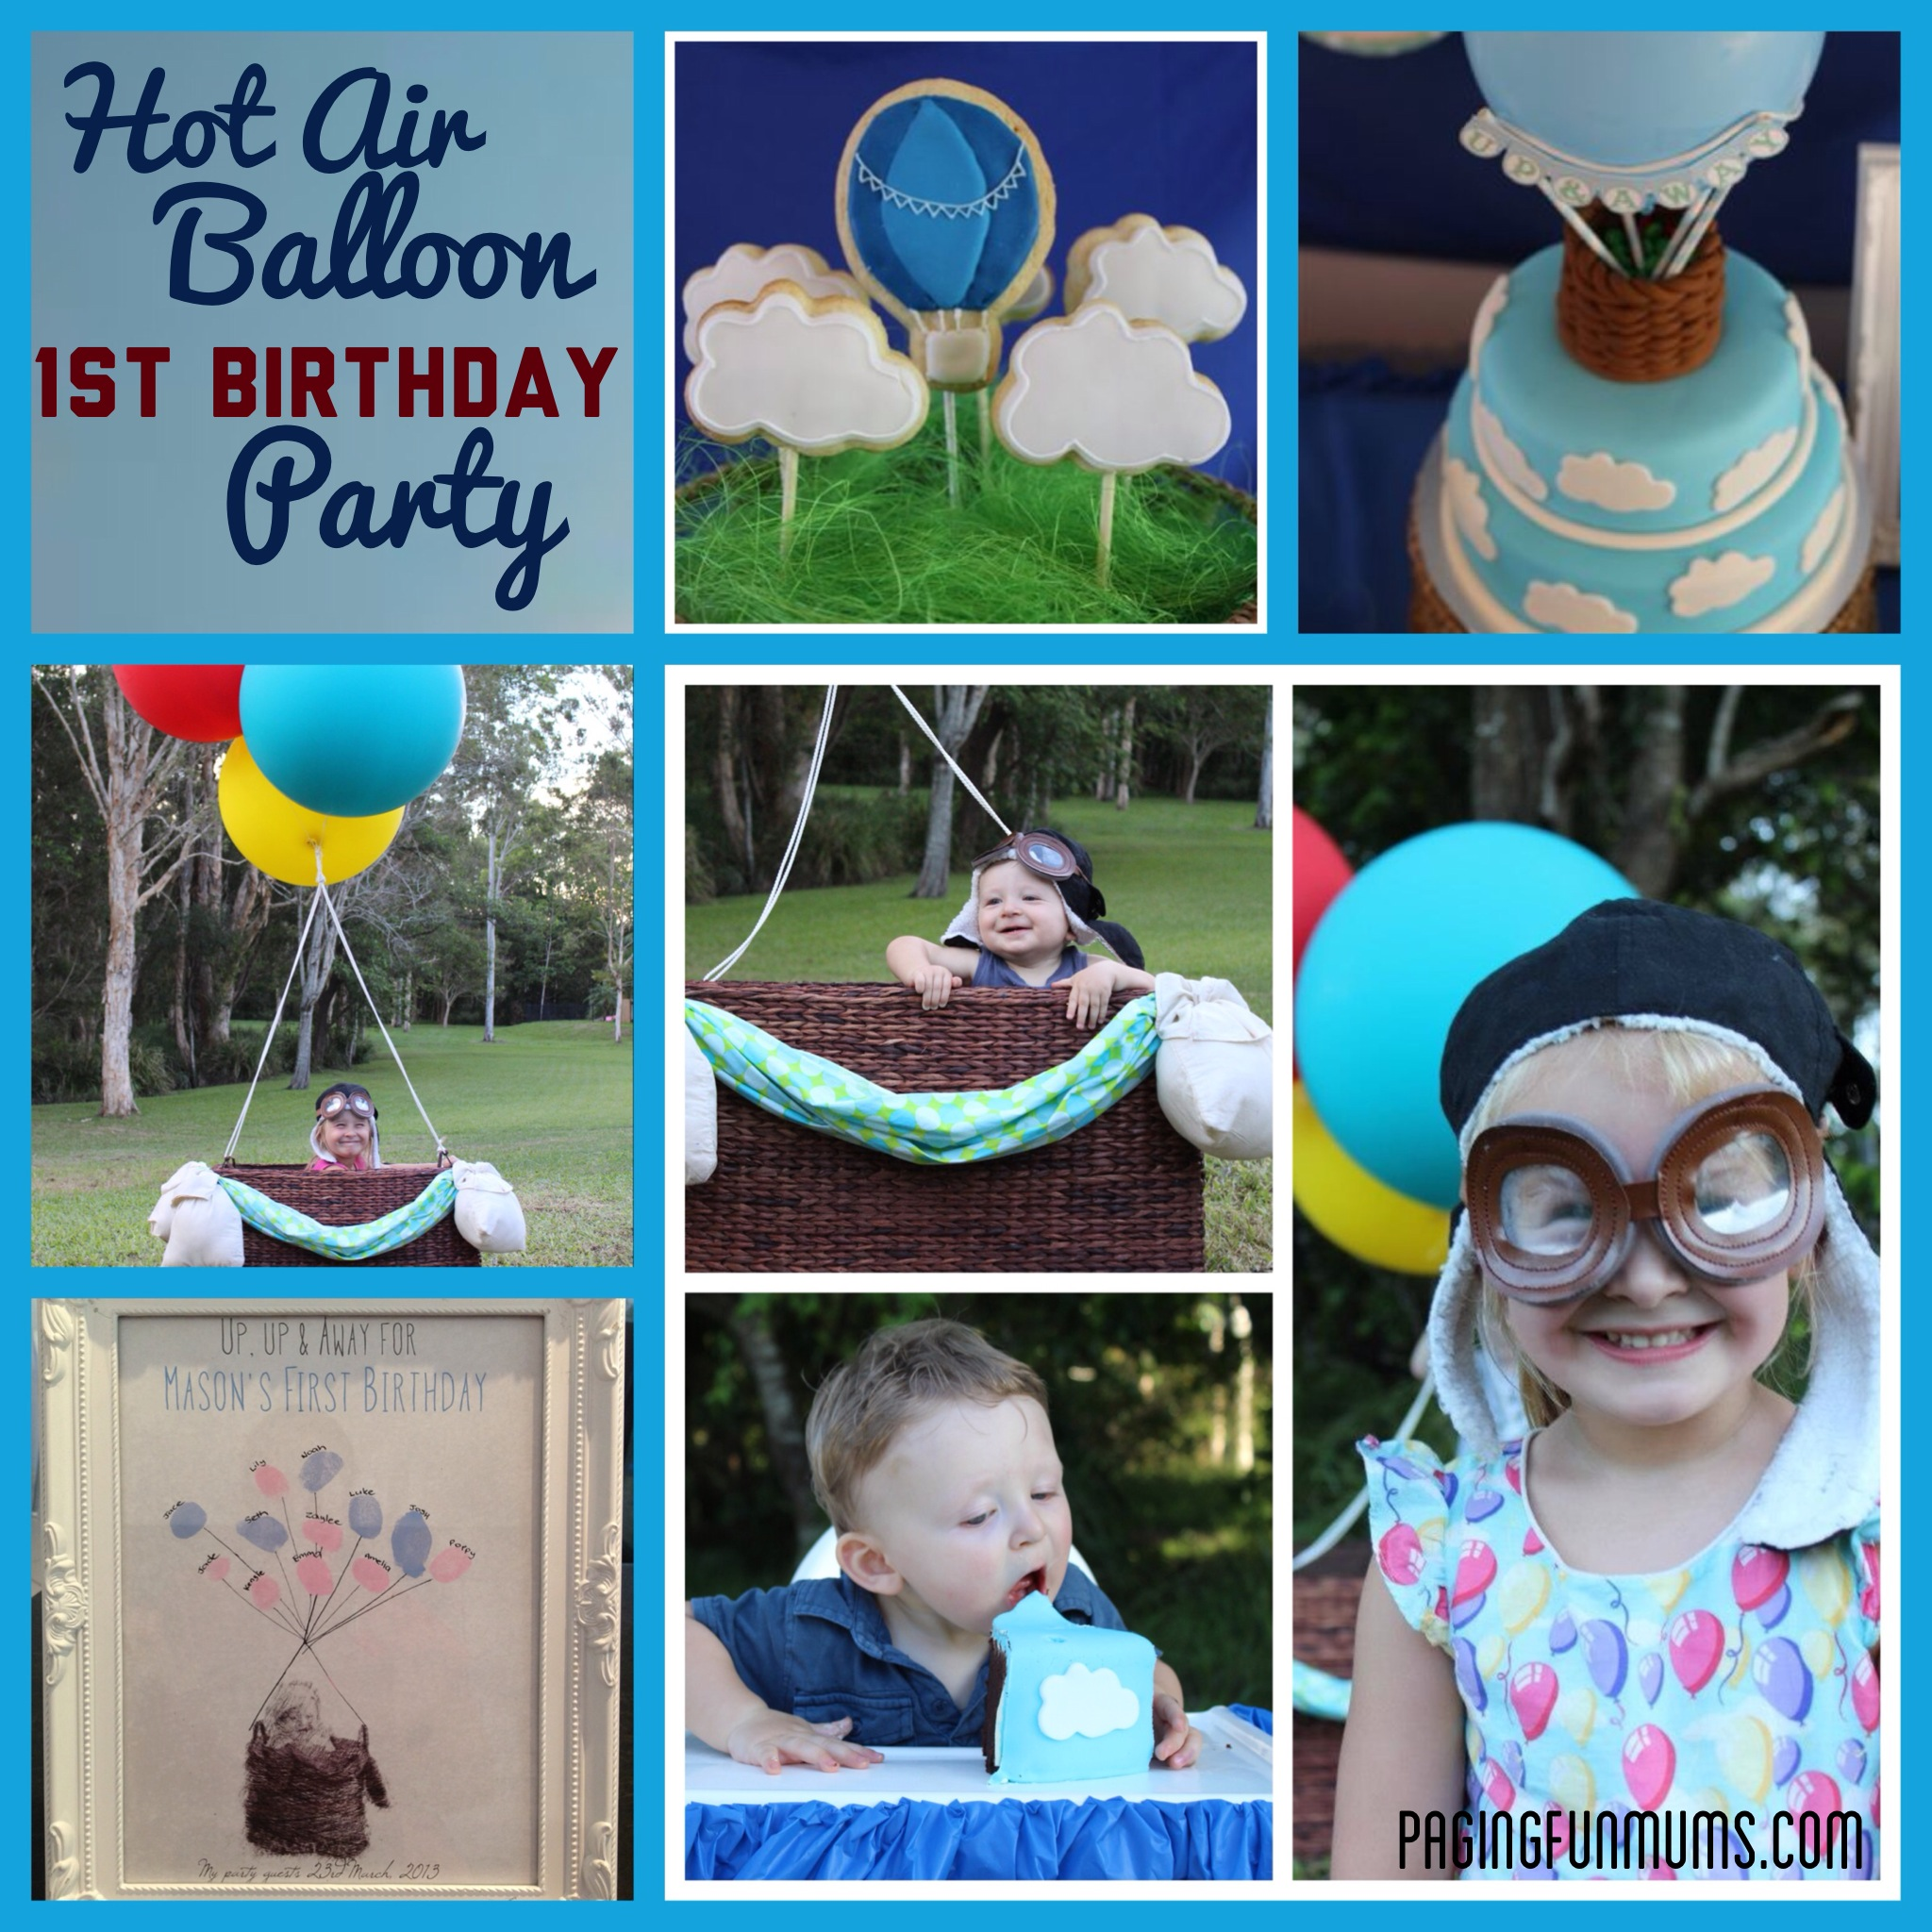 Hot Air Balloon Party for 1st Birthday